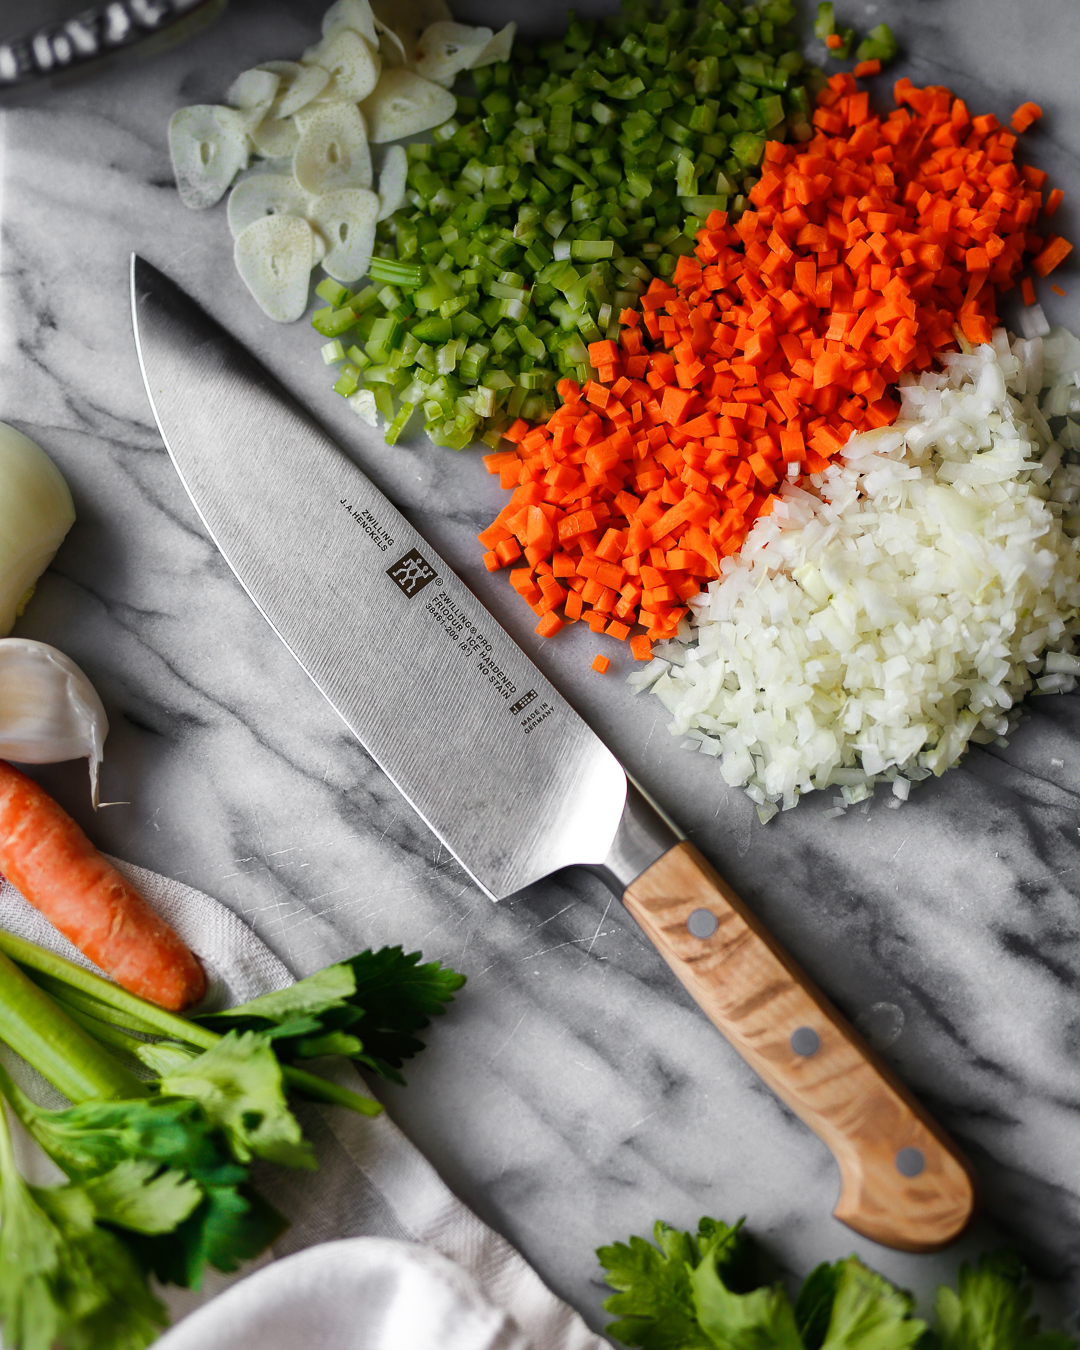 Zwilling Pro Blonde Chef Knife Giveaway Primal Gourmet